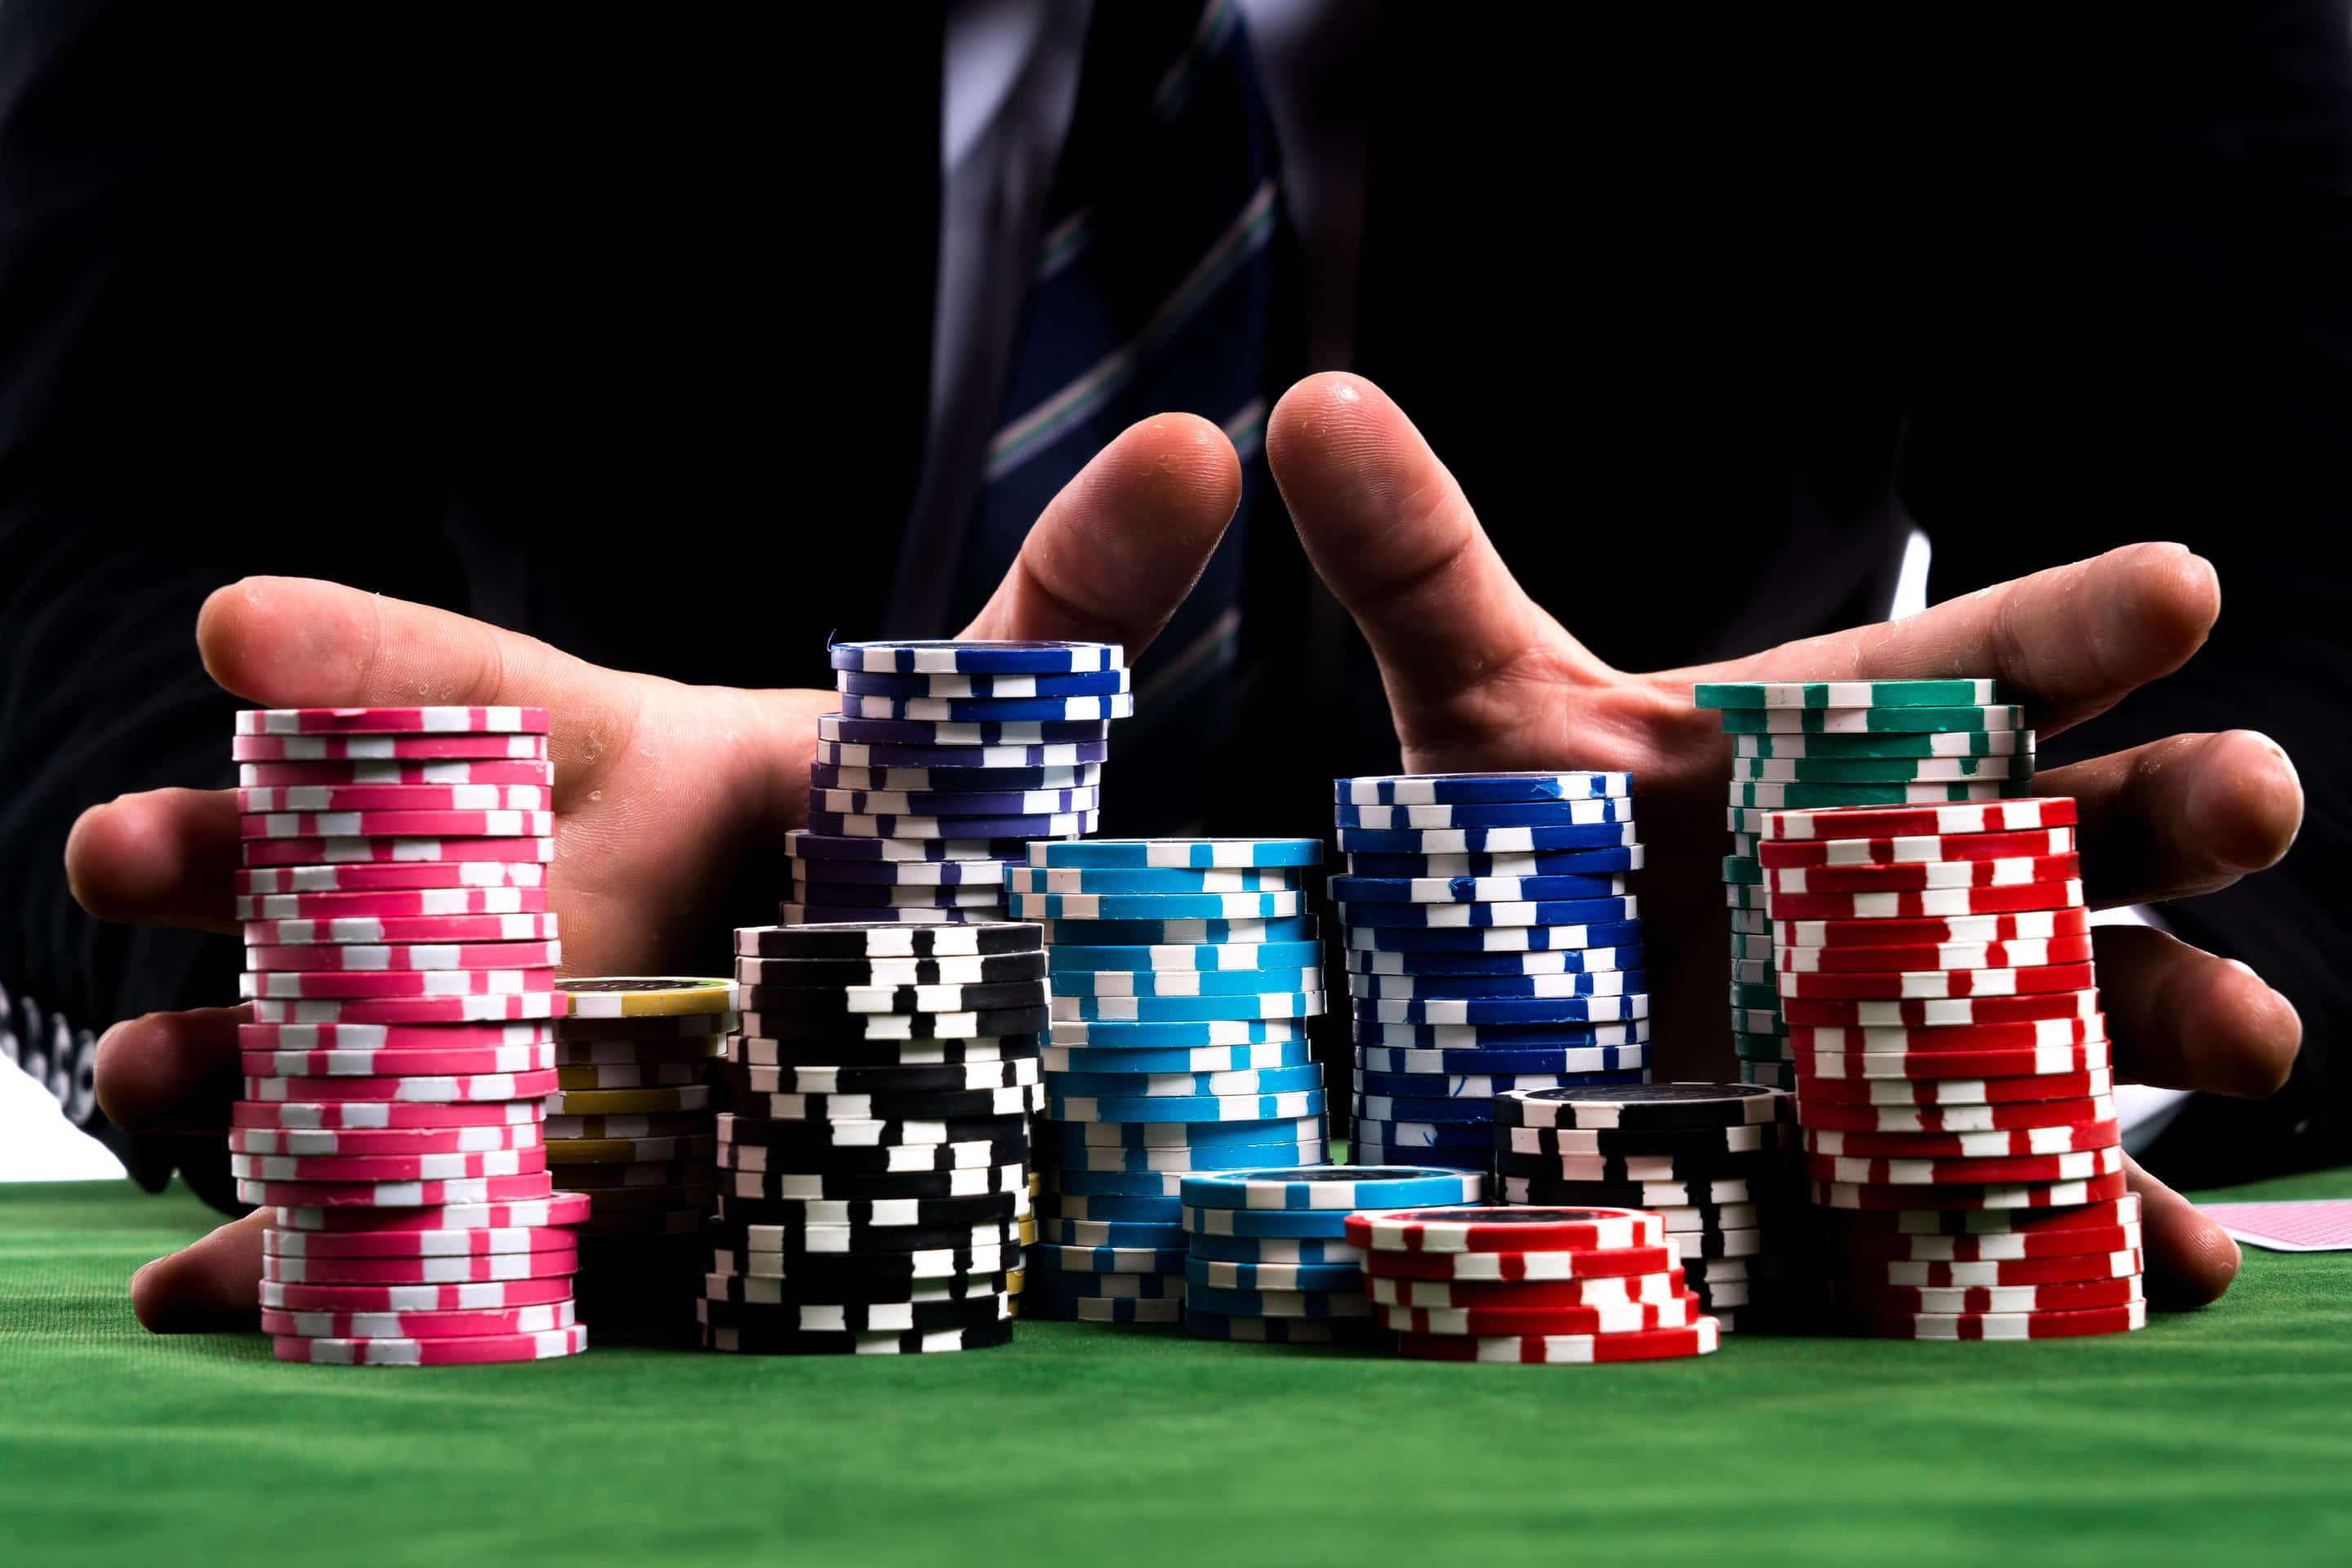 a pair of hands holding a big pile of poker chips